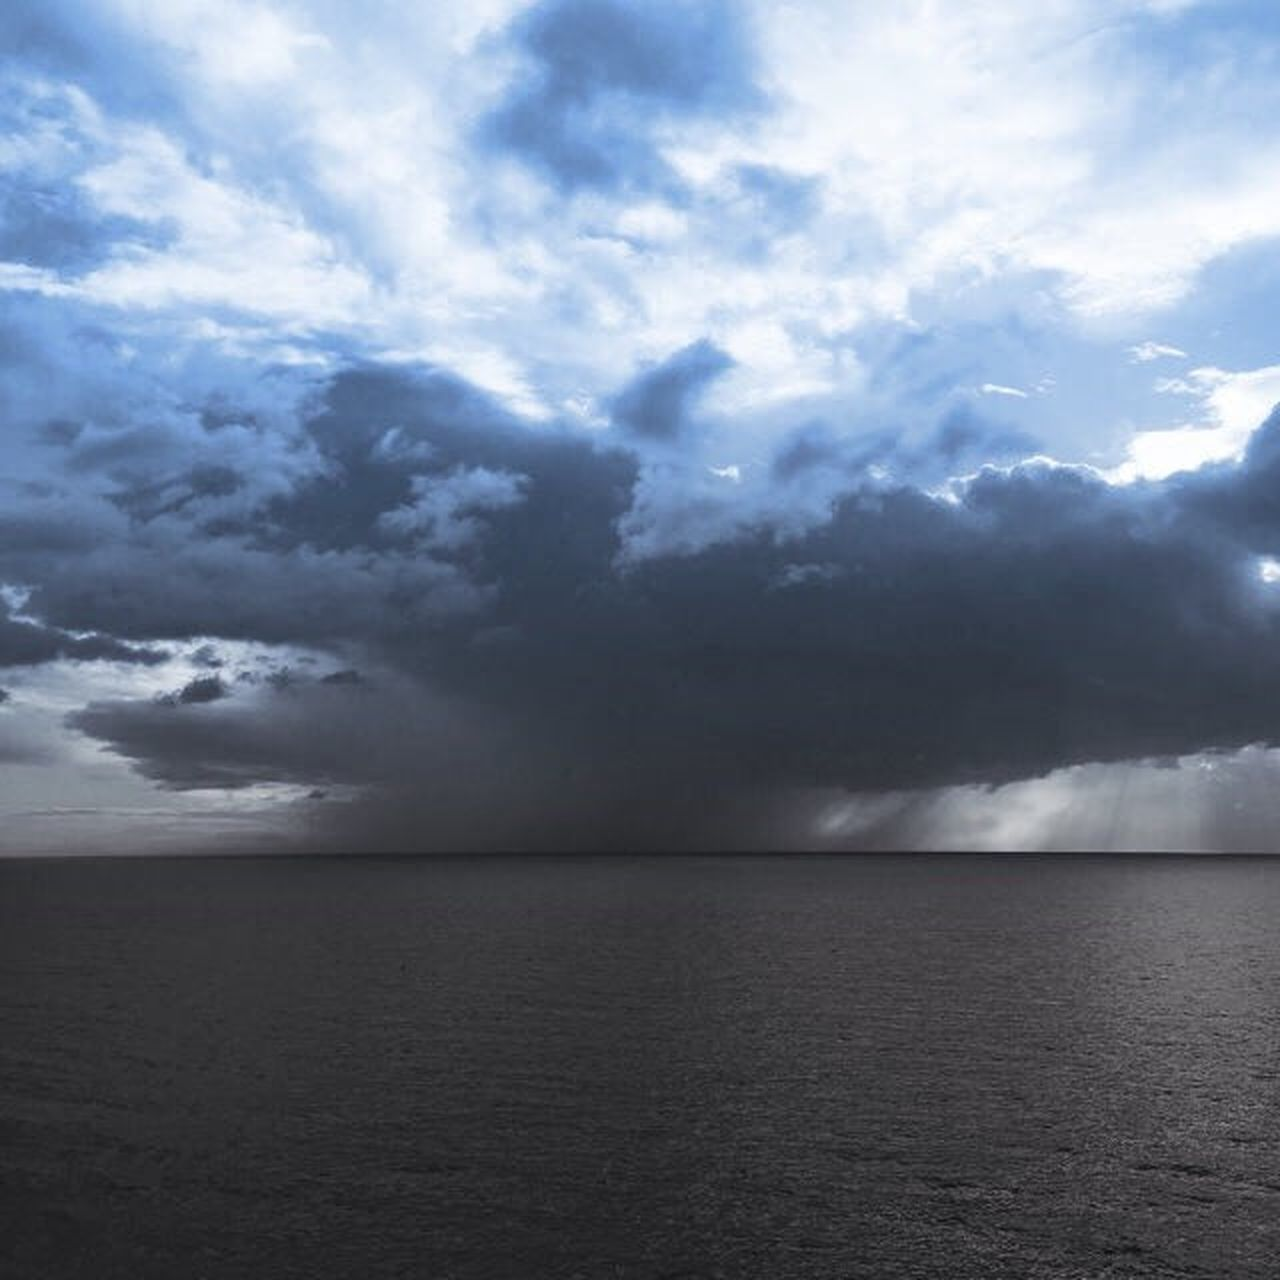 cloud - sky, sea, nature, sky, scenics, water, storm, thunderstorm, no people, outdoors, storm cloud, horizon over water, day, beauty in nature